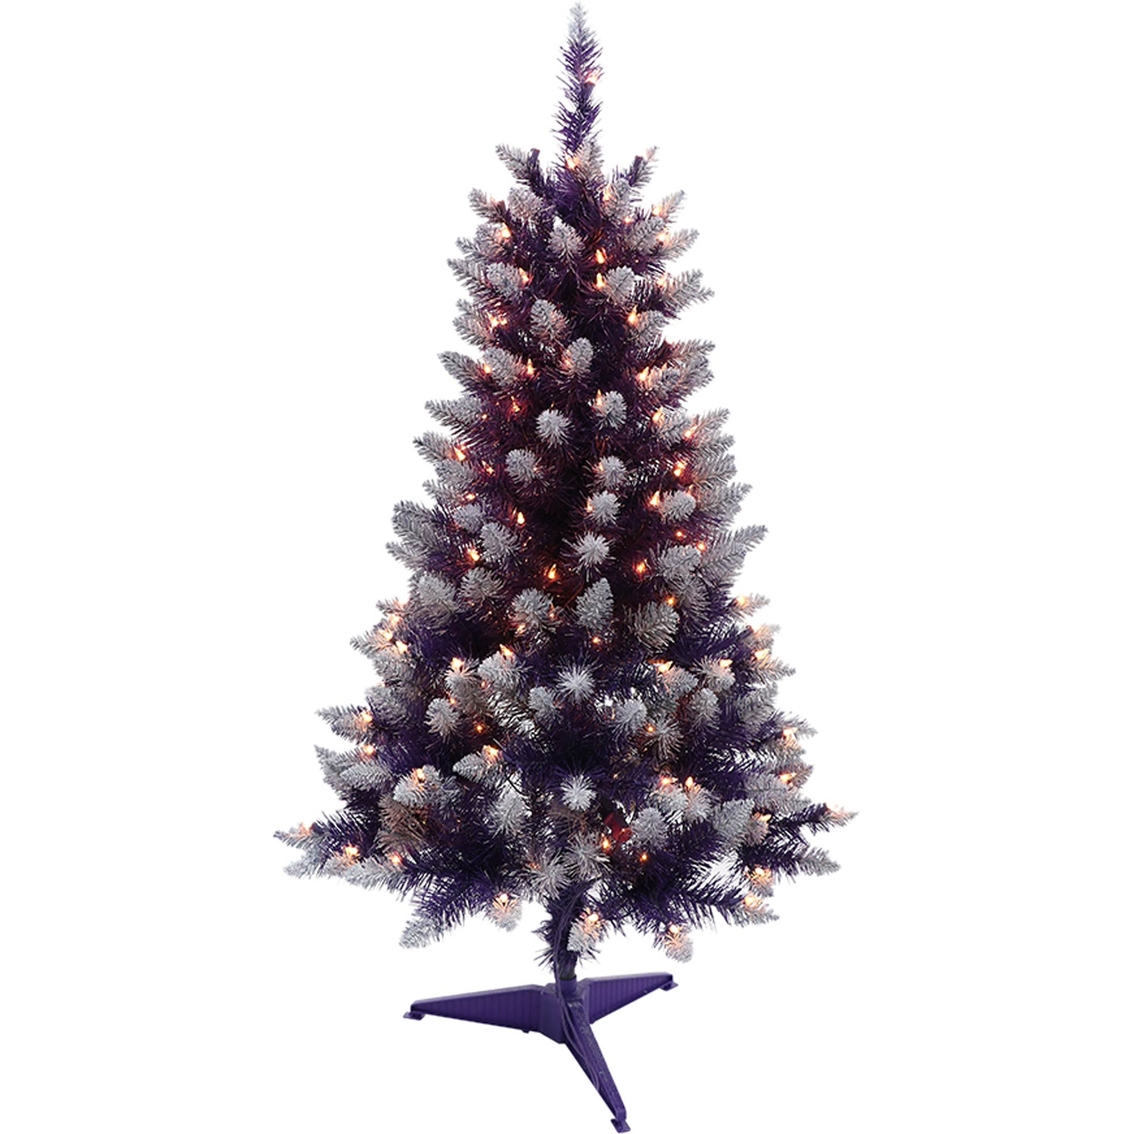 4 Ft. Pre-lit Fashion Purple Pine Christmas Tree With 150 ...